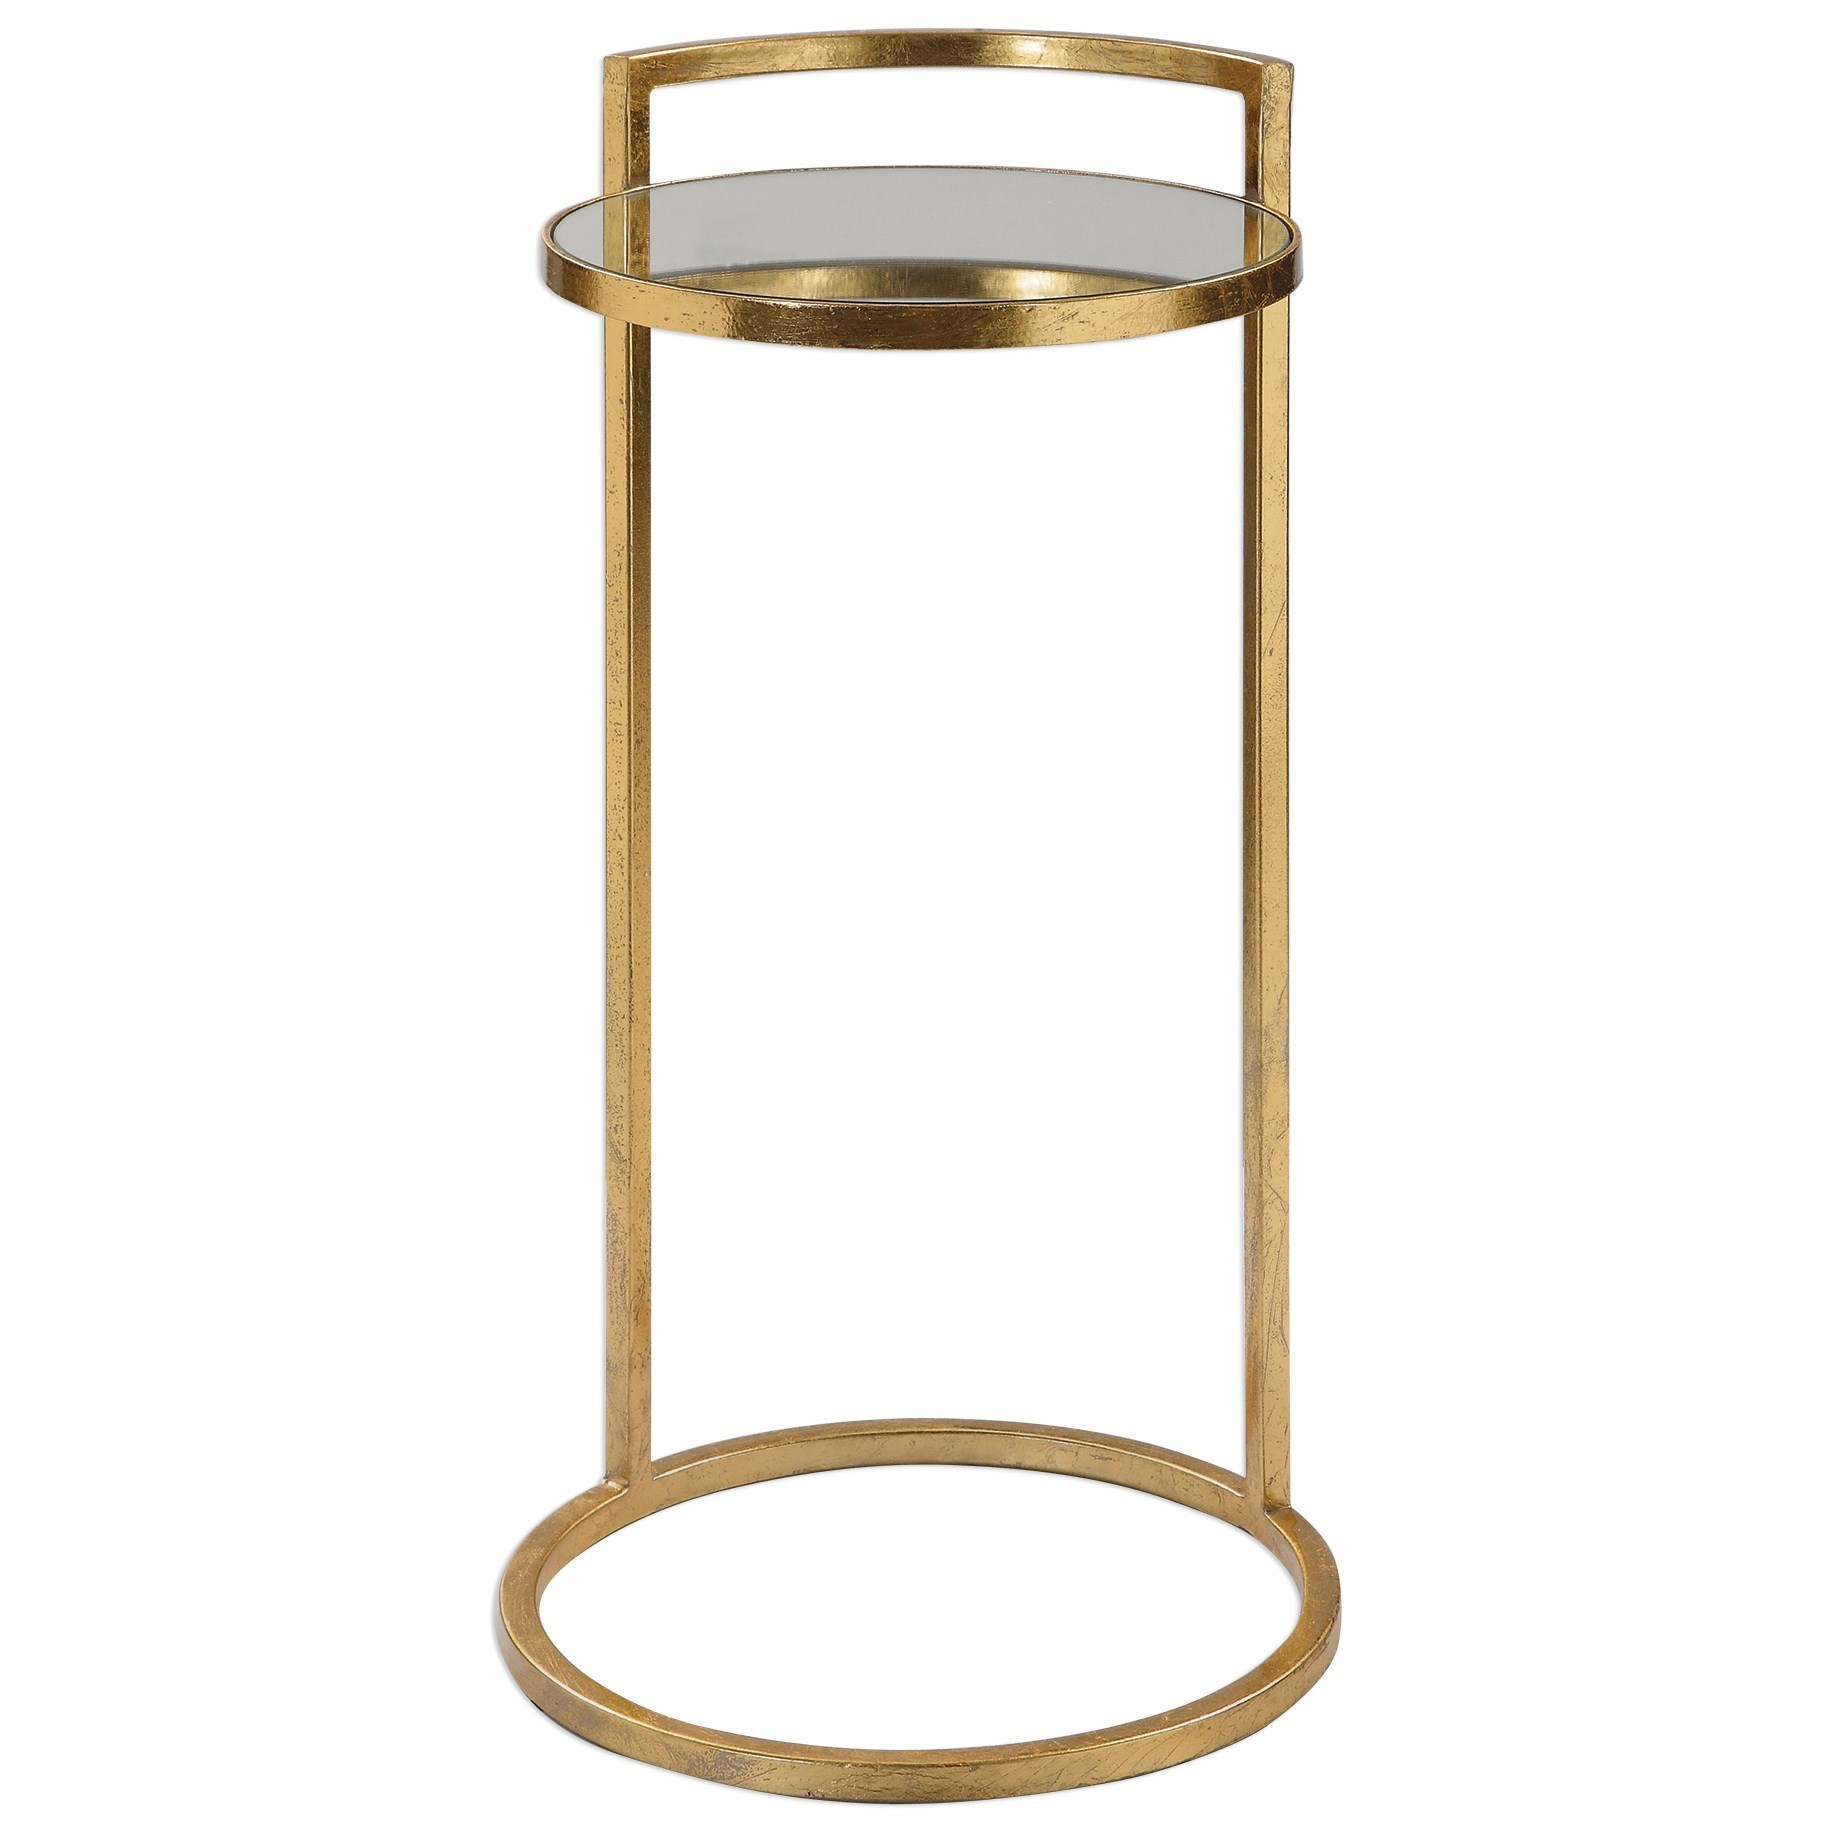 Accent Furniture - Occasional Tables Cailin Gold Accent Table by Uttermost at O'Dunk & O'Bright Furniture